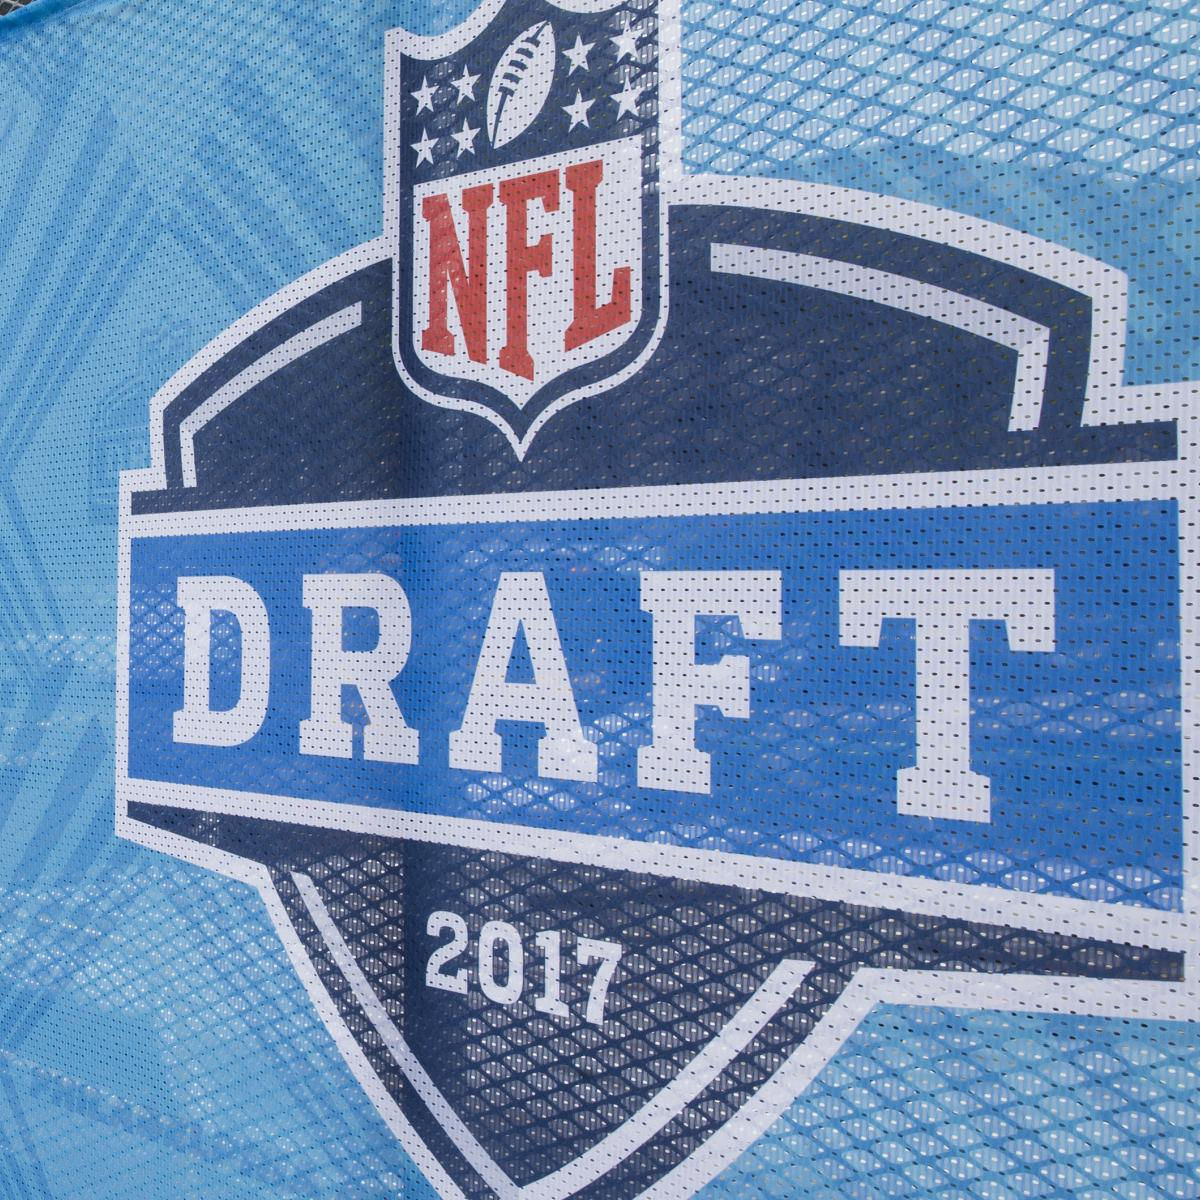 NFL Draft 2017: Start Time, Live Stream and TV Coverage for First RoundRelated